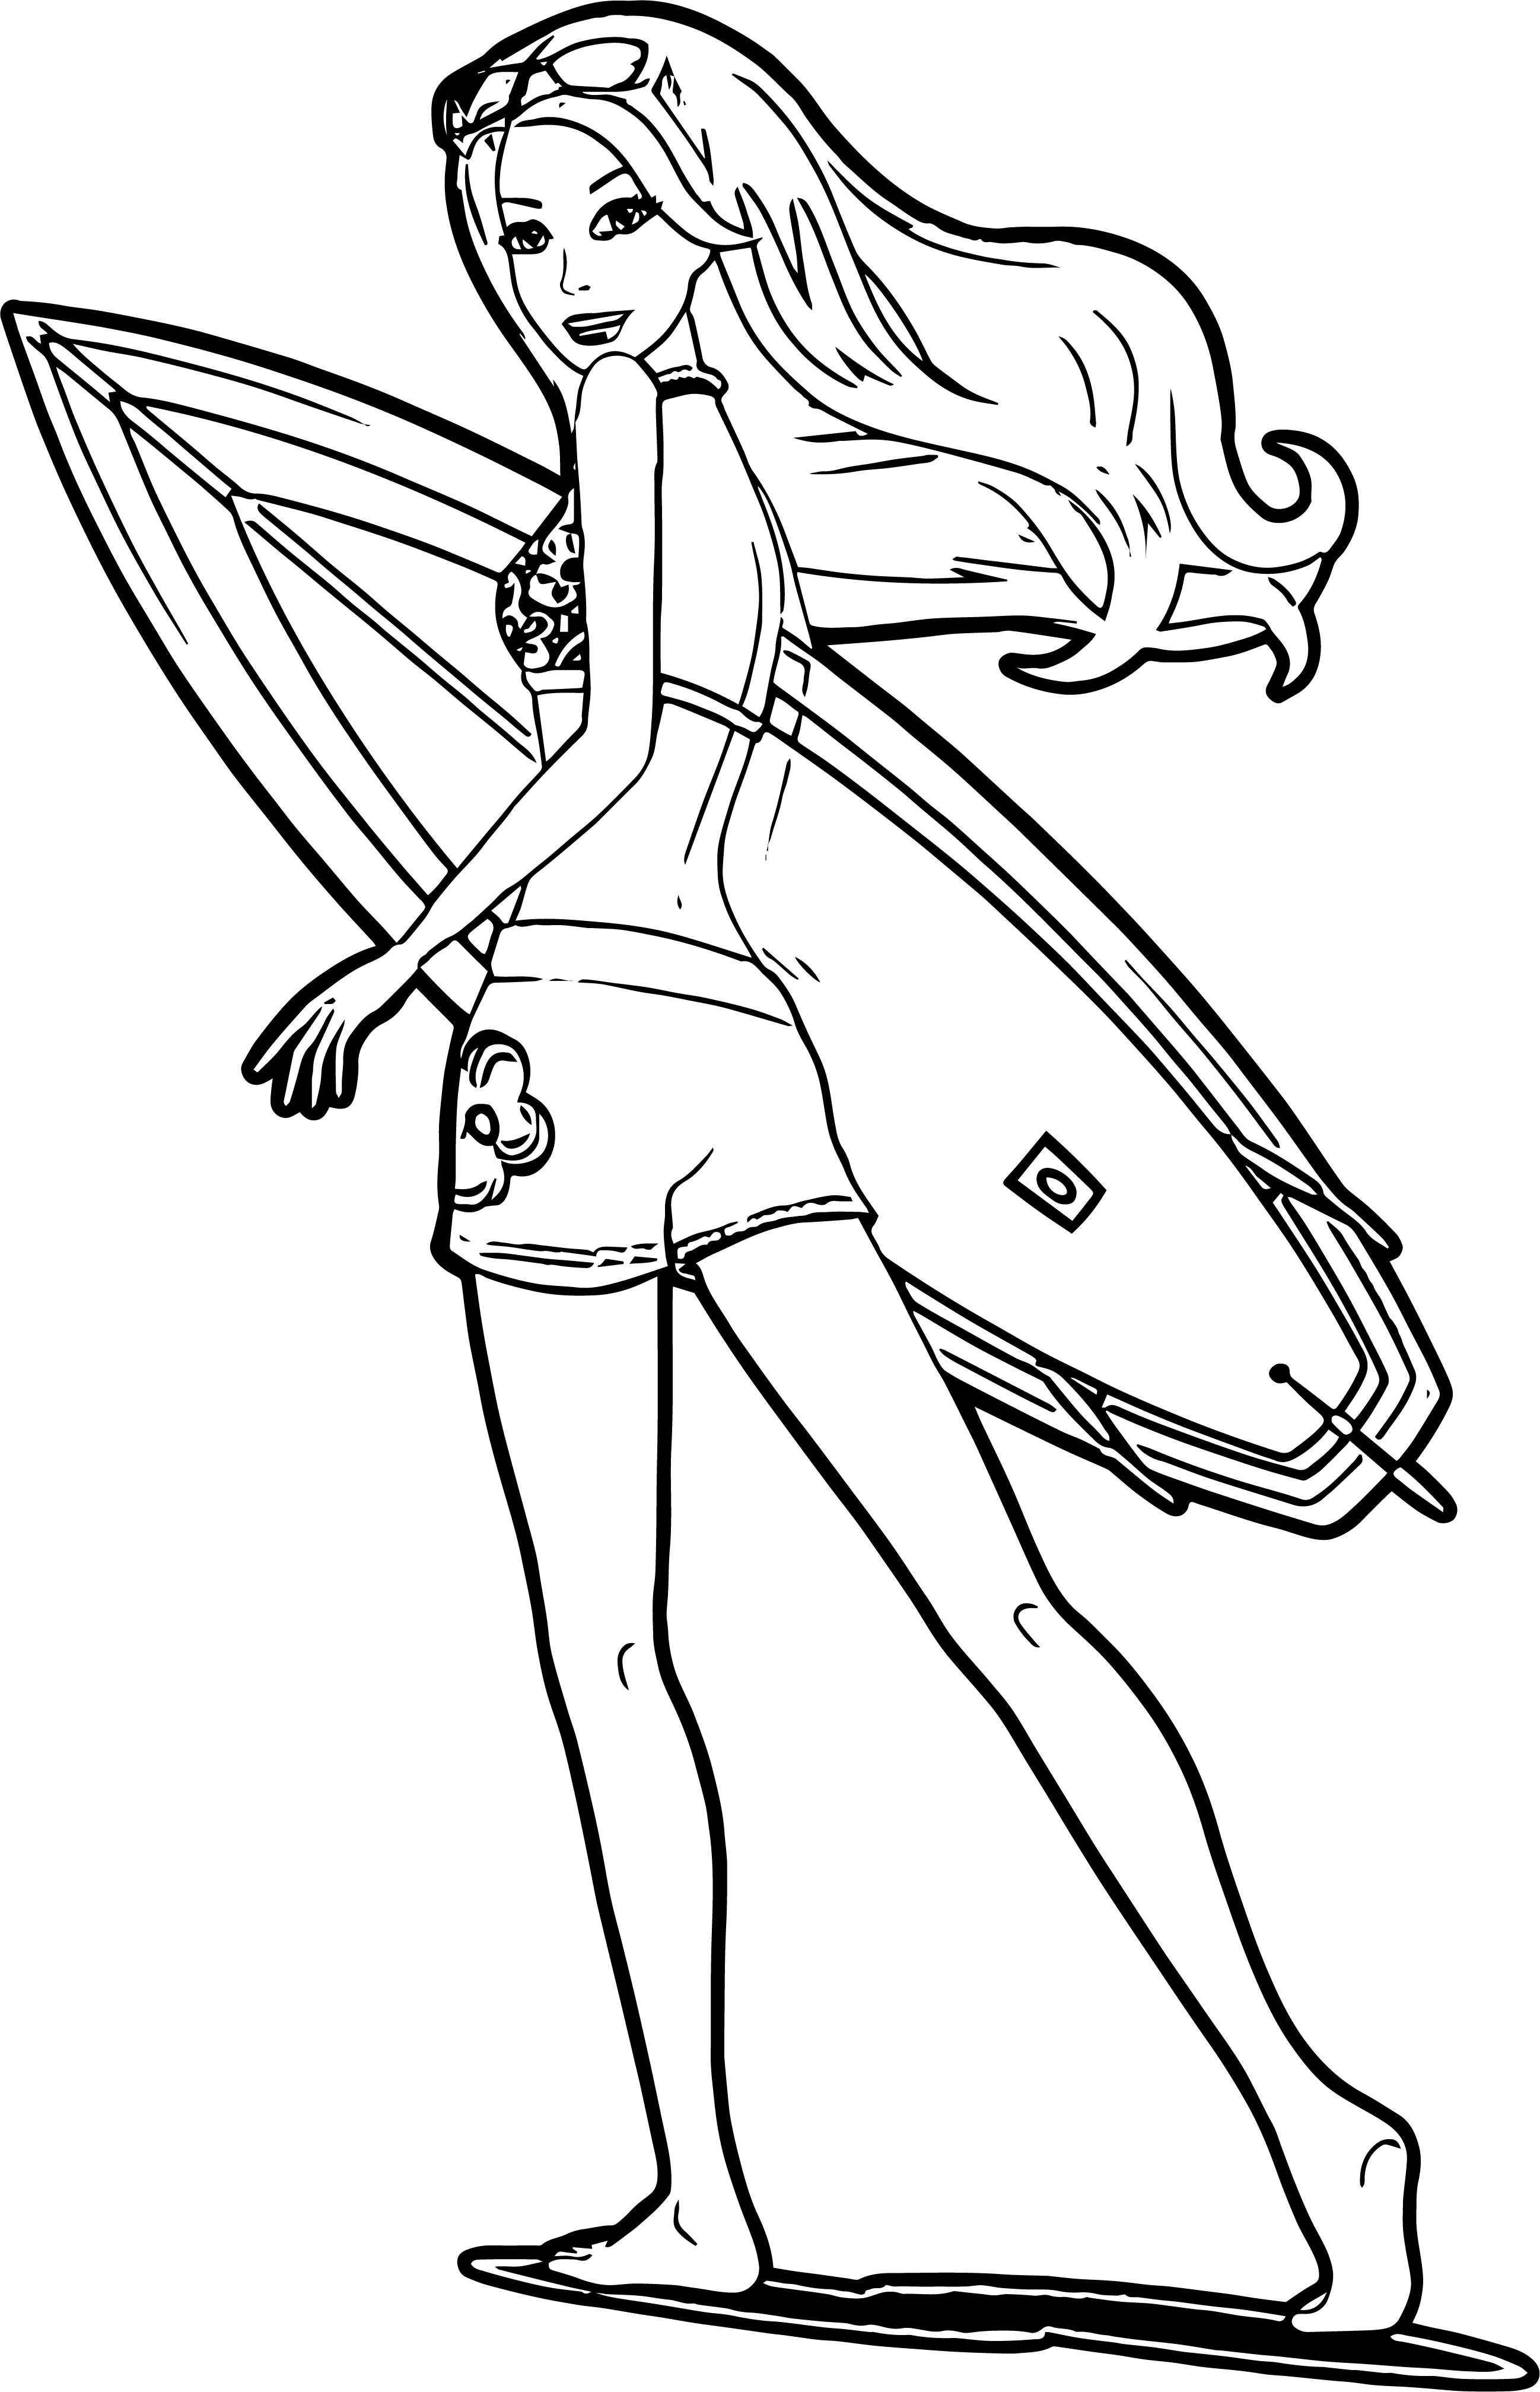 Barbie Run Surfing Coloring Page